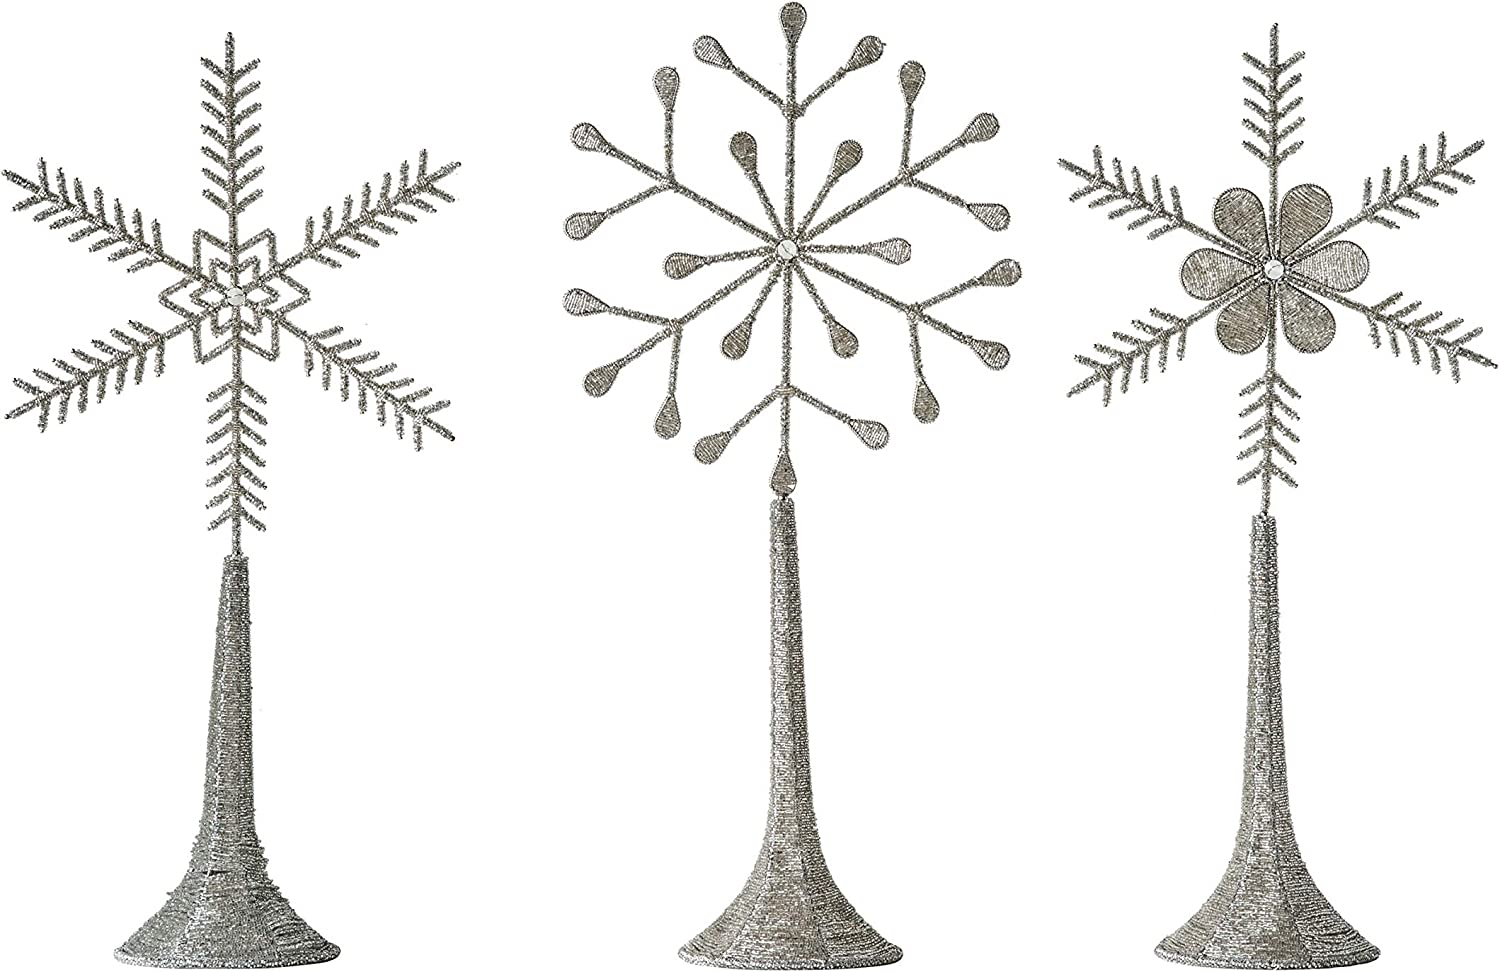 Creative Co-op Silver Metal & Glass Beaded Snowflake on Stand (Set of 3 Styles) Figures and Figurines